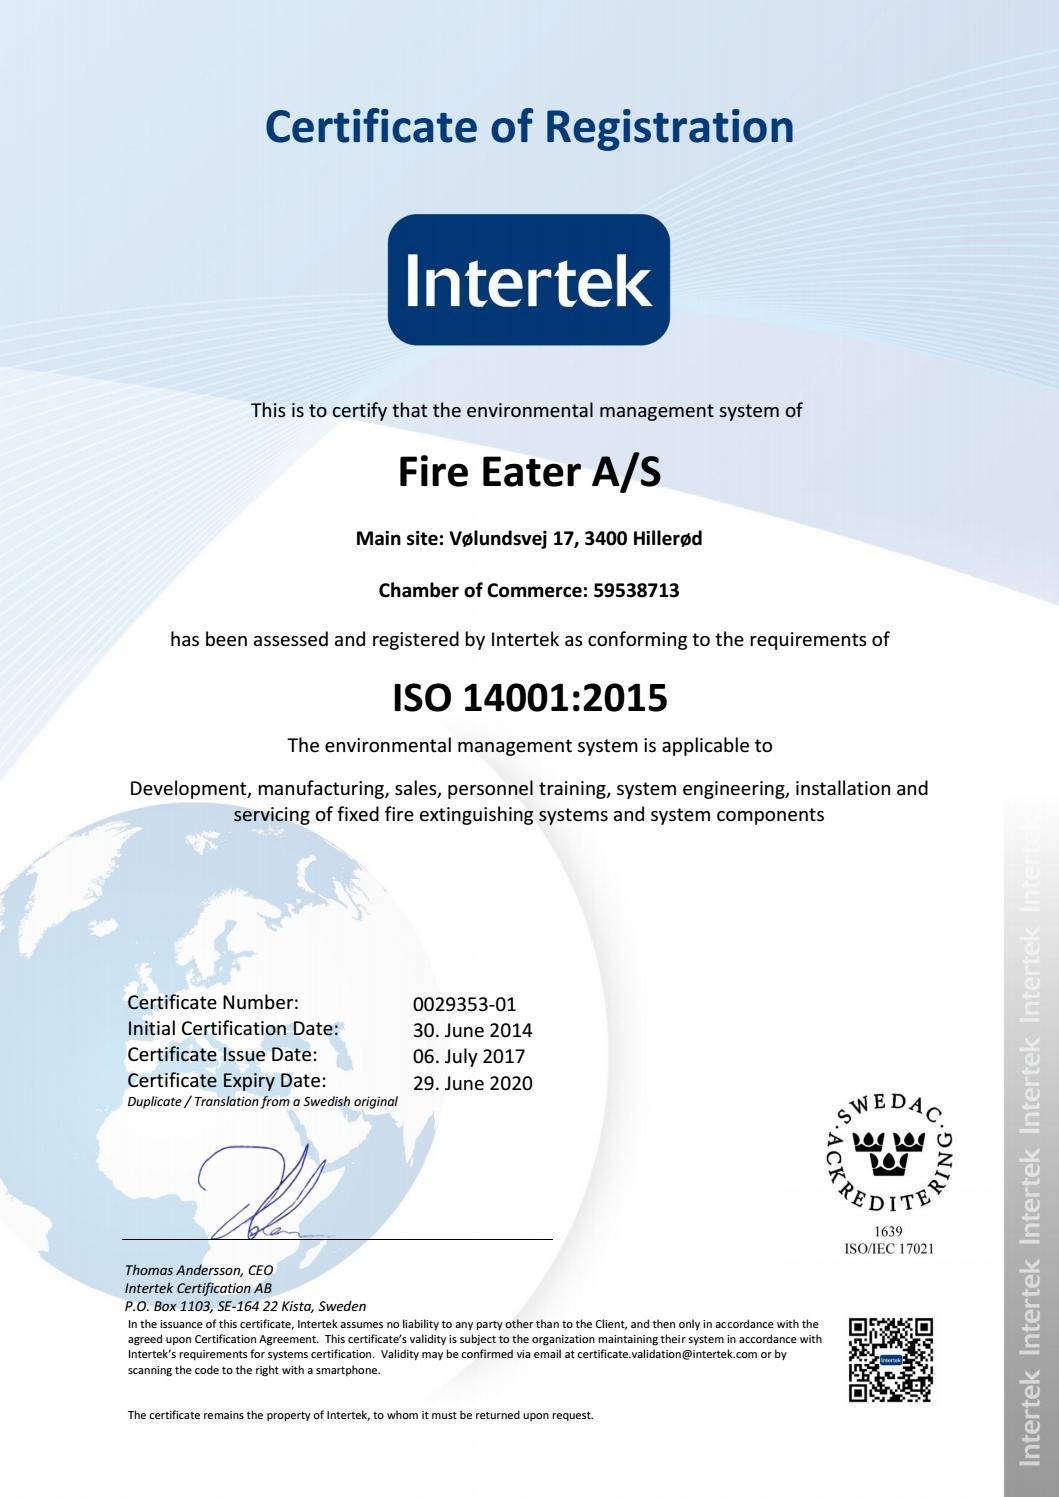 Intertek Certifikat Iso 140012015 By Fire Eater Issuu